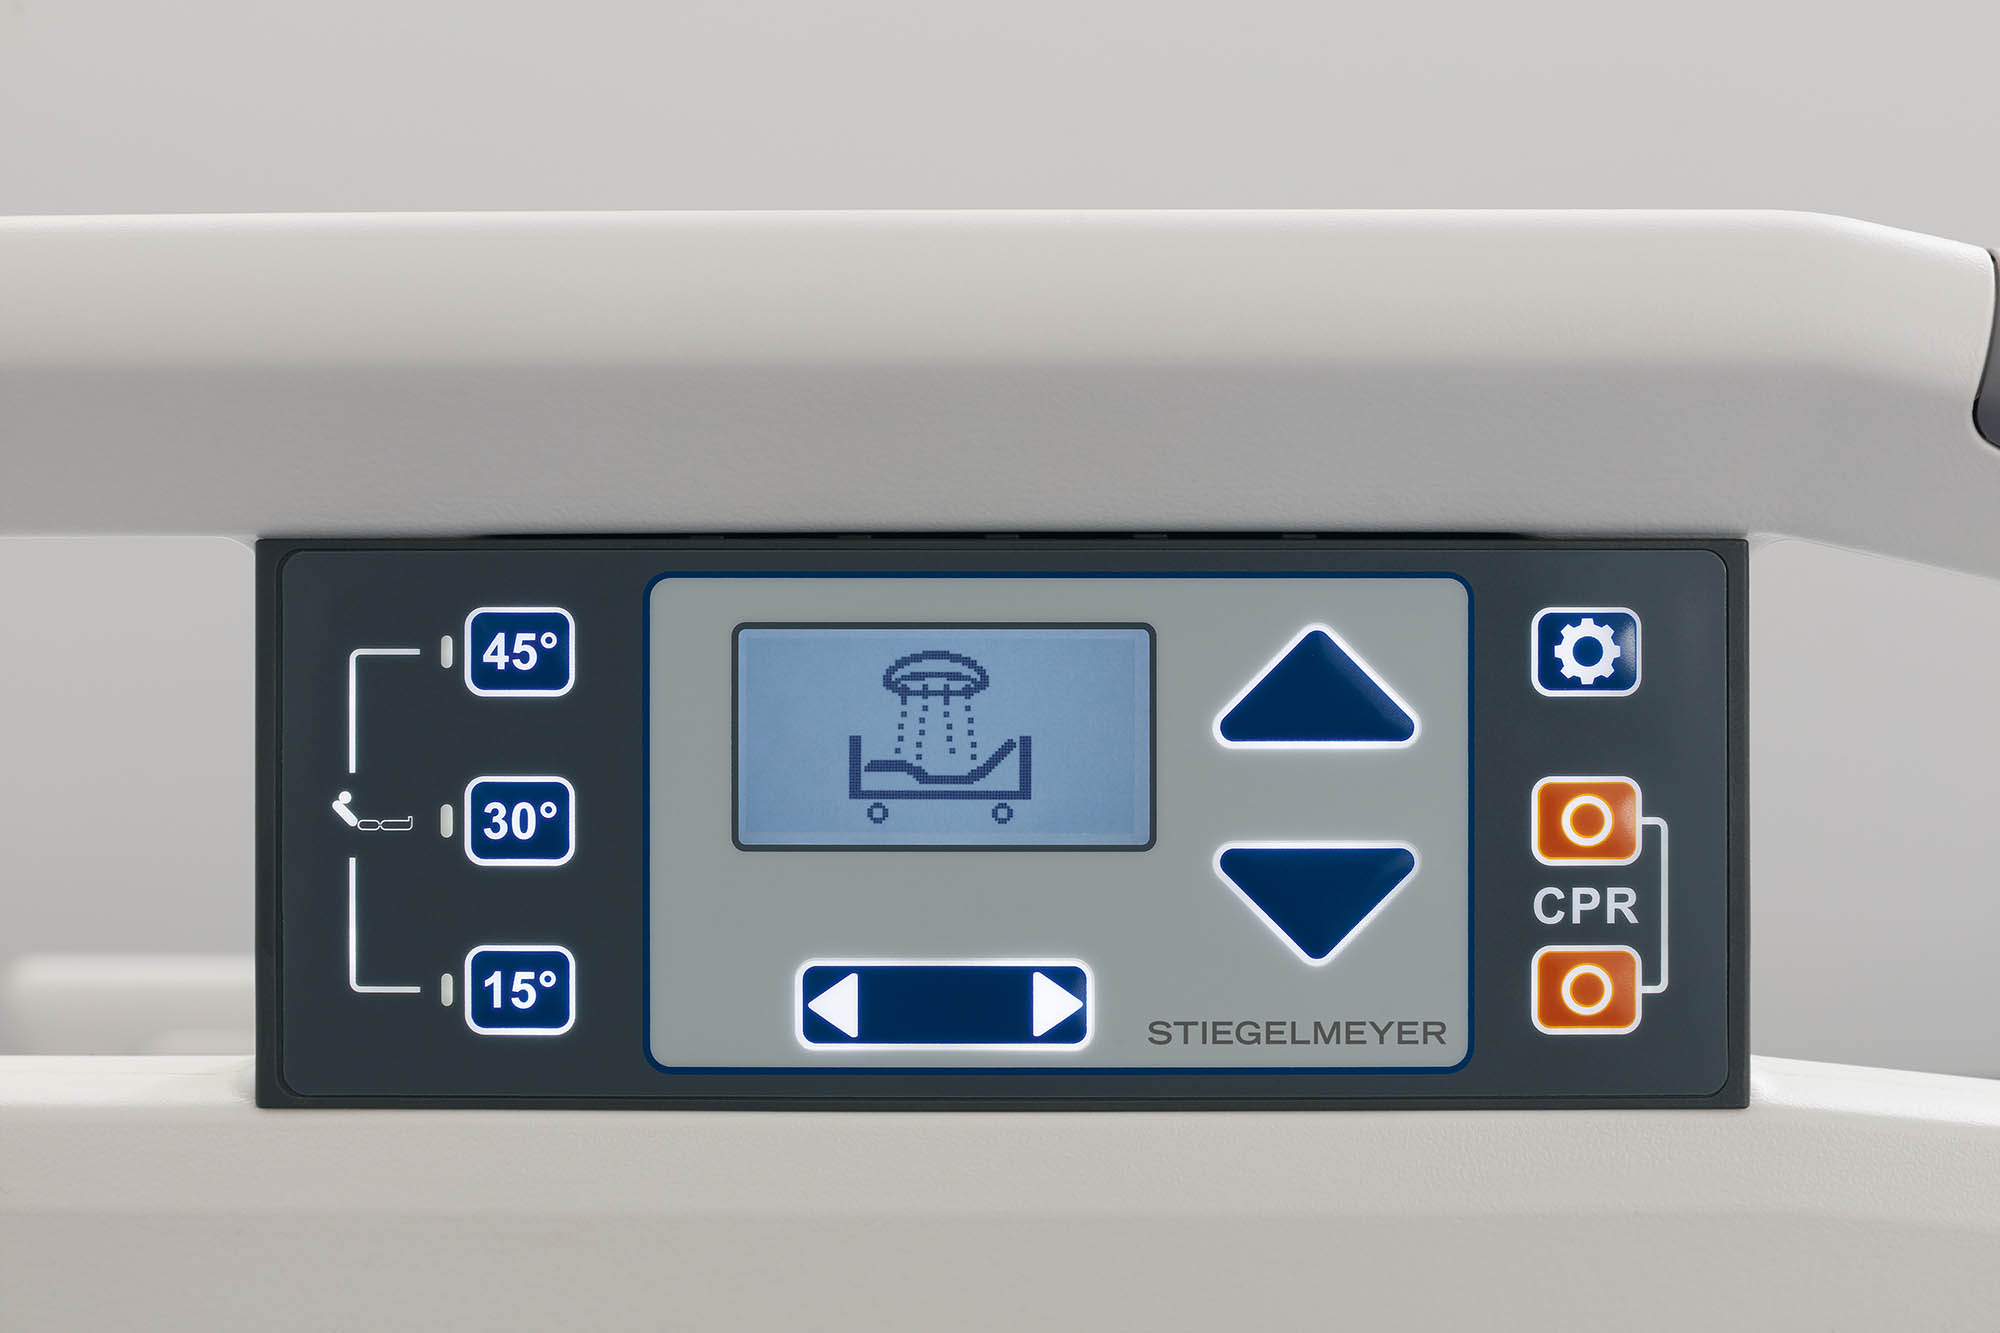 Control panel with pre-settings on the Evario hospital bed